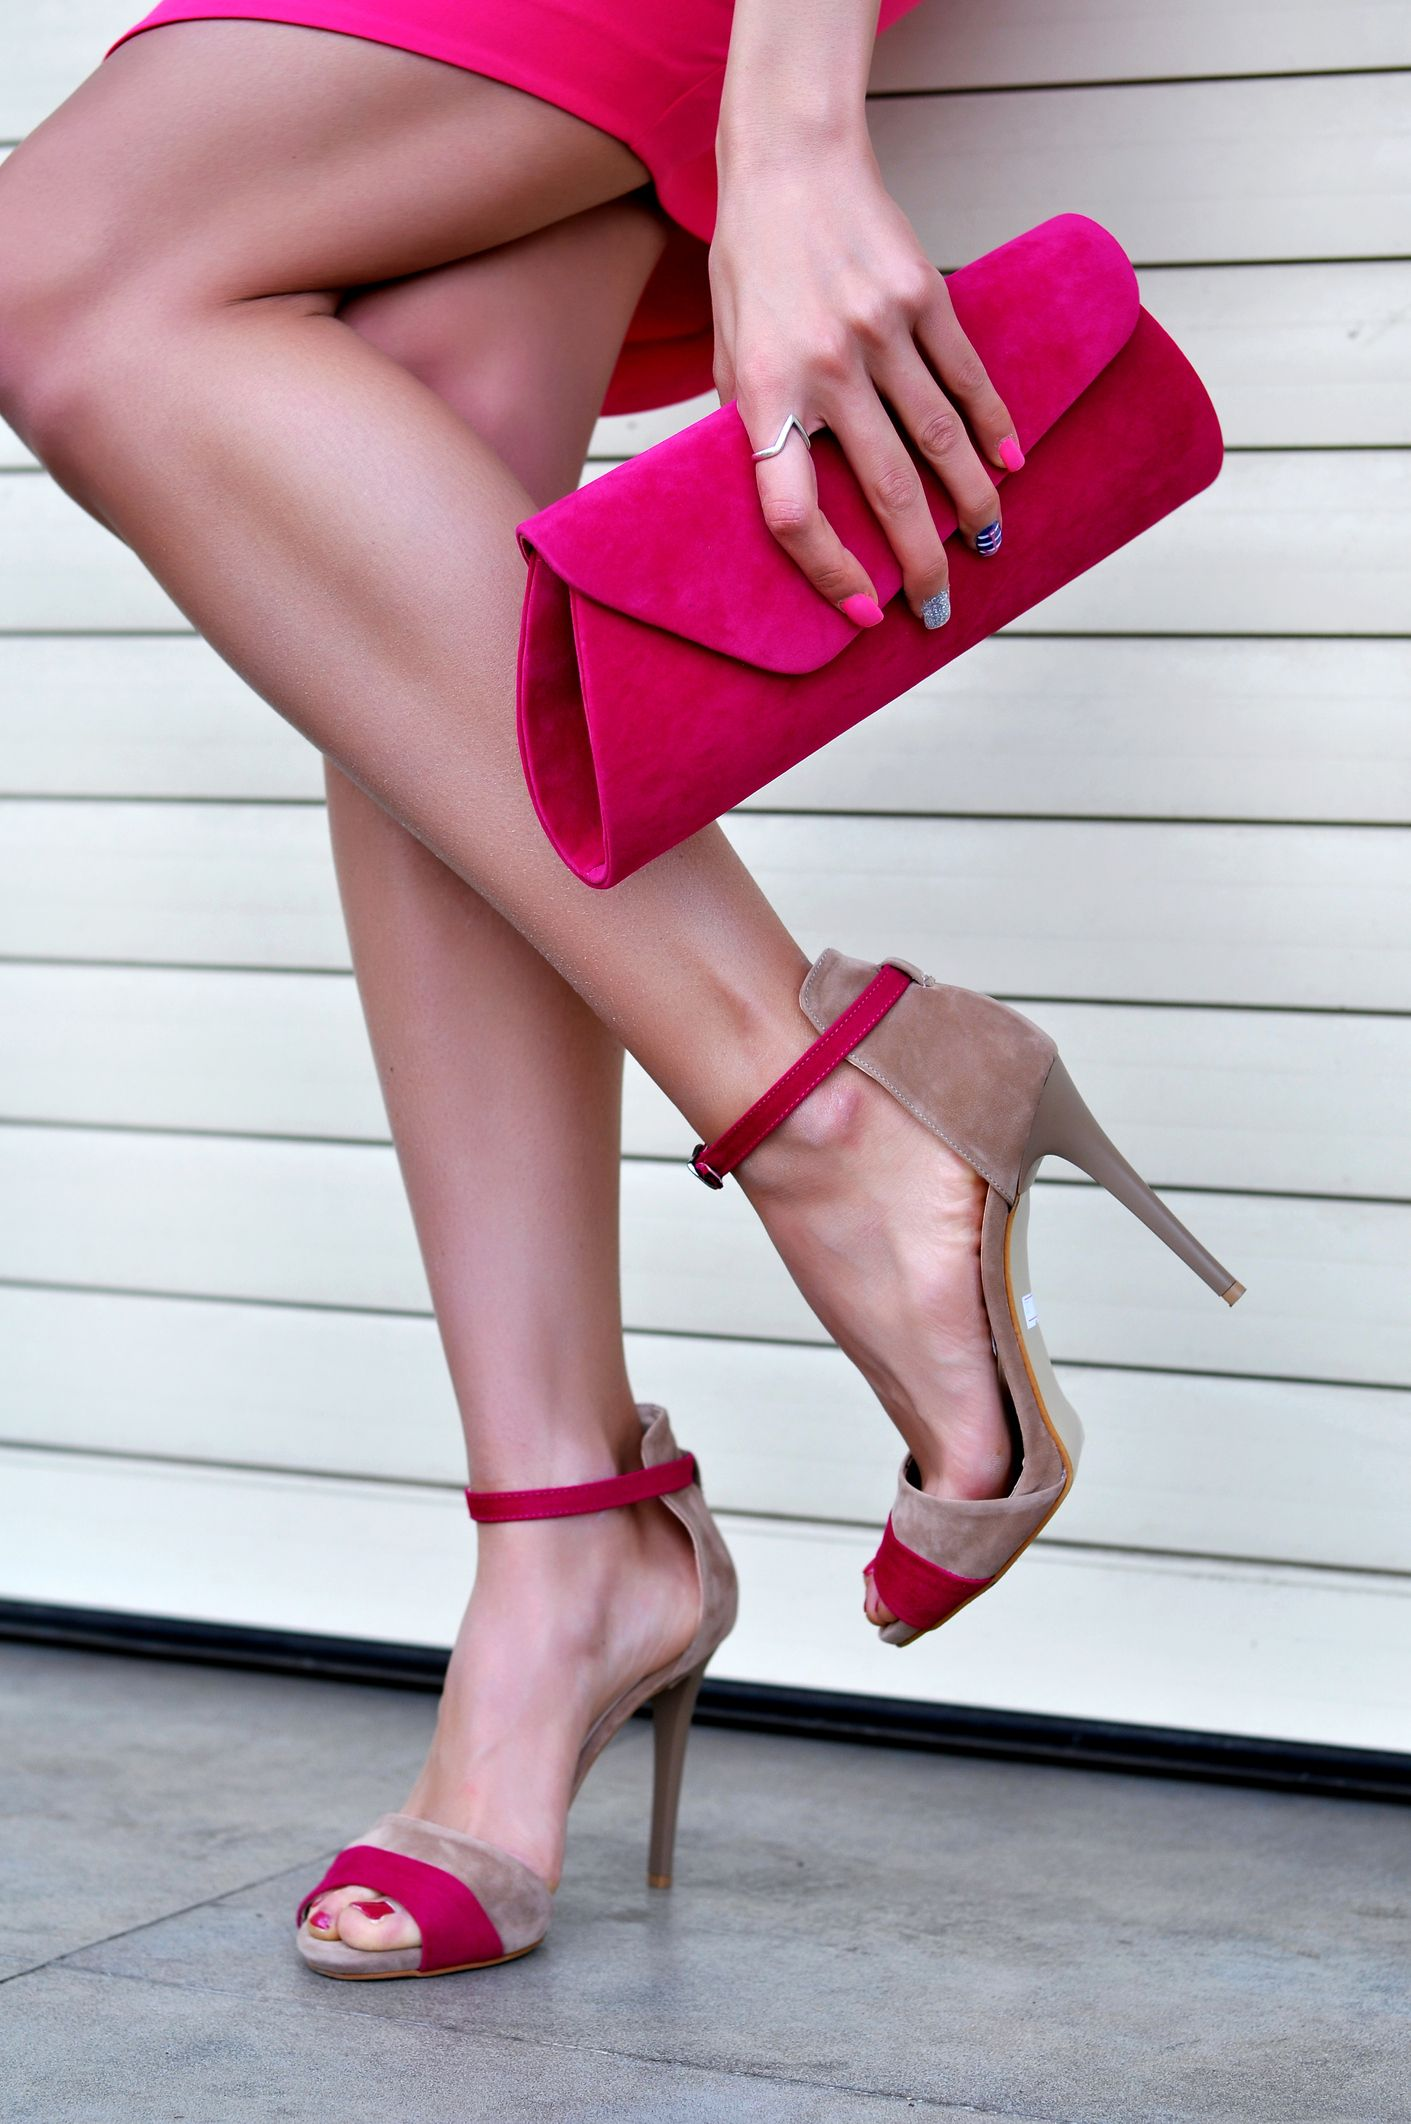 Sexy woman's legs with a fashionable pink high heels and handbag